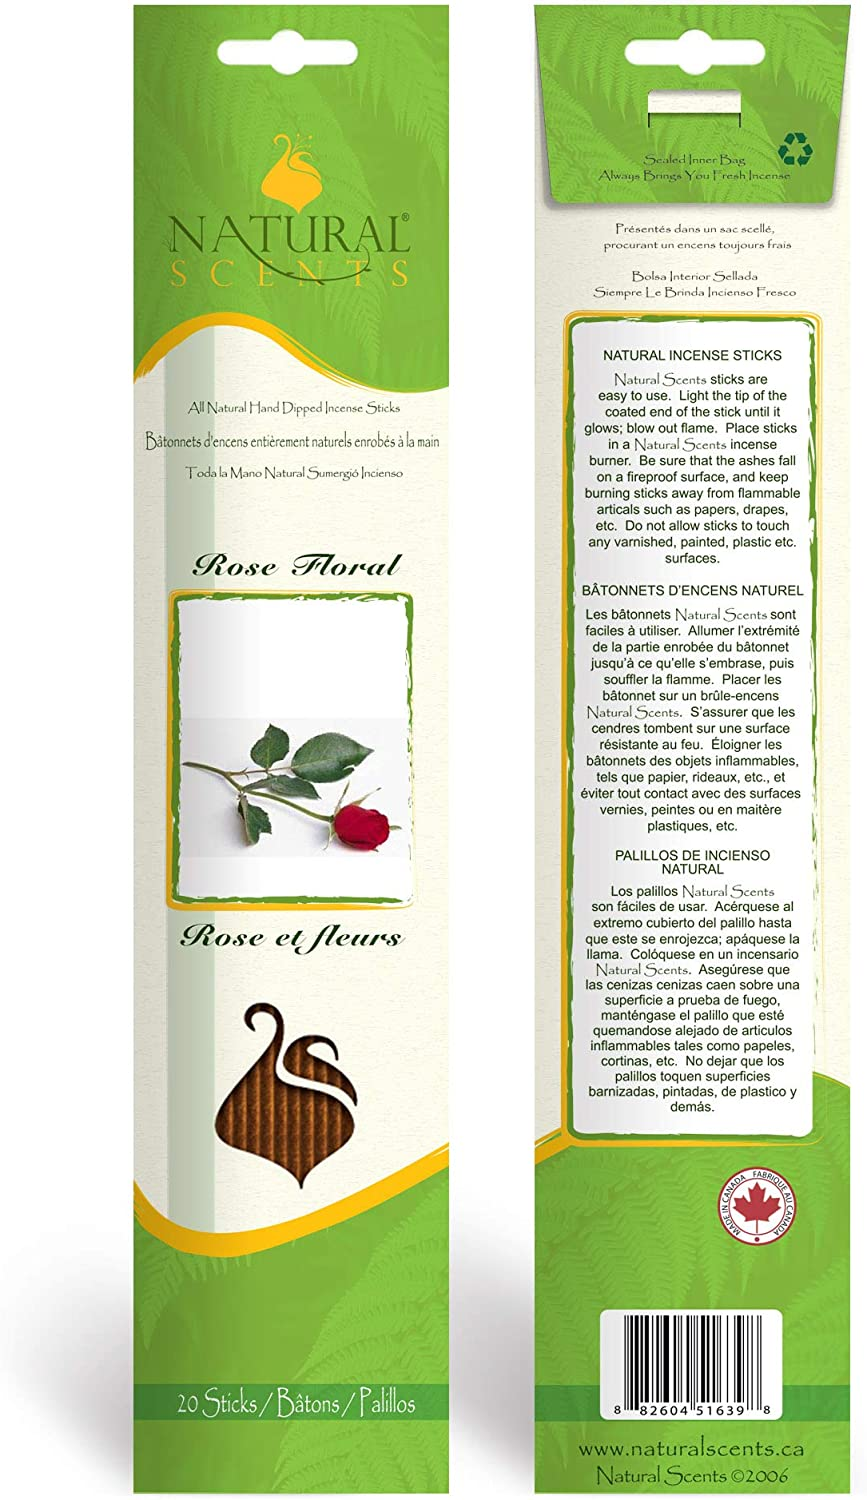 Perfect for Meditation Healing Yoga Relaxation 100/% Natural Hand Dipped Incense Sticks Made in Canada 11 inch 20 sticks per package. Rose Floral// Rose et Fleurs Prayer /& Rituals Aromatherapy